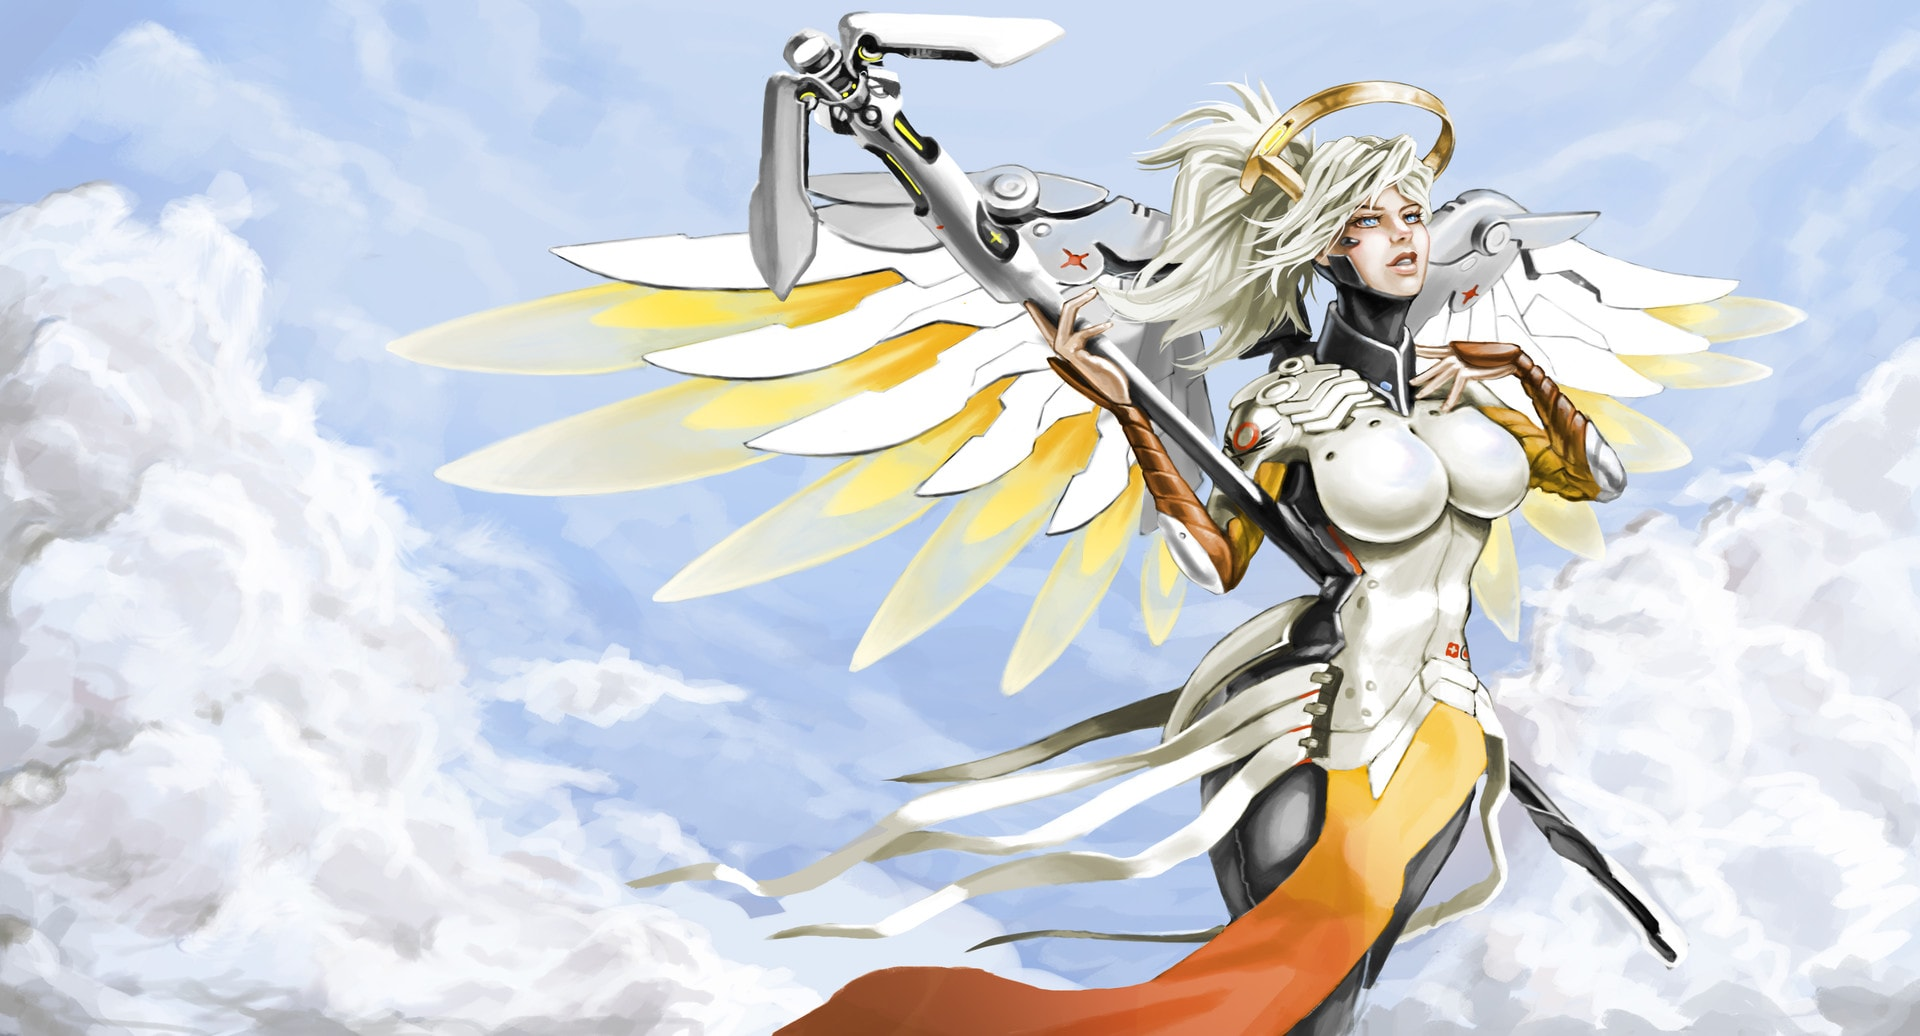 Overwatch : Mercy Full hd wallpapers